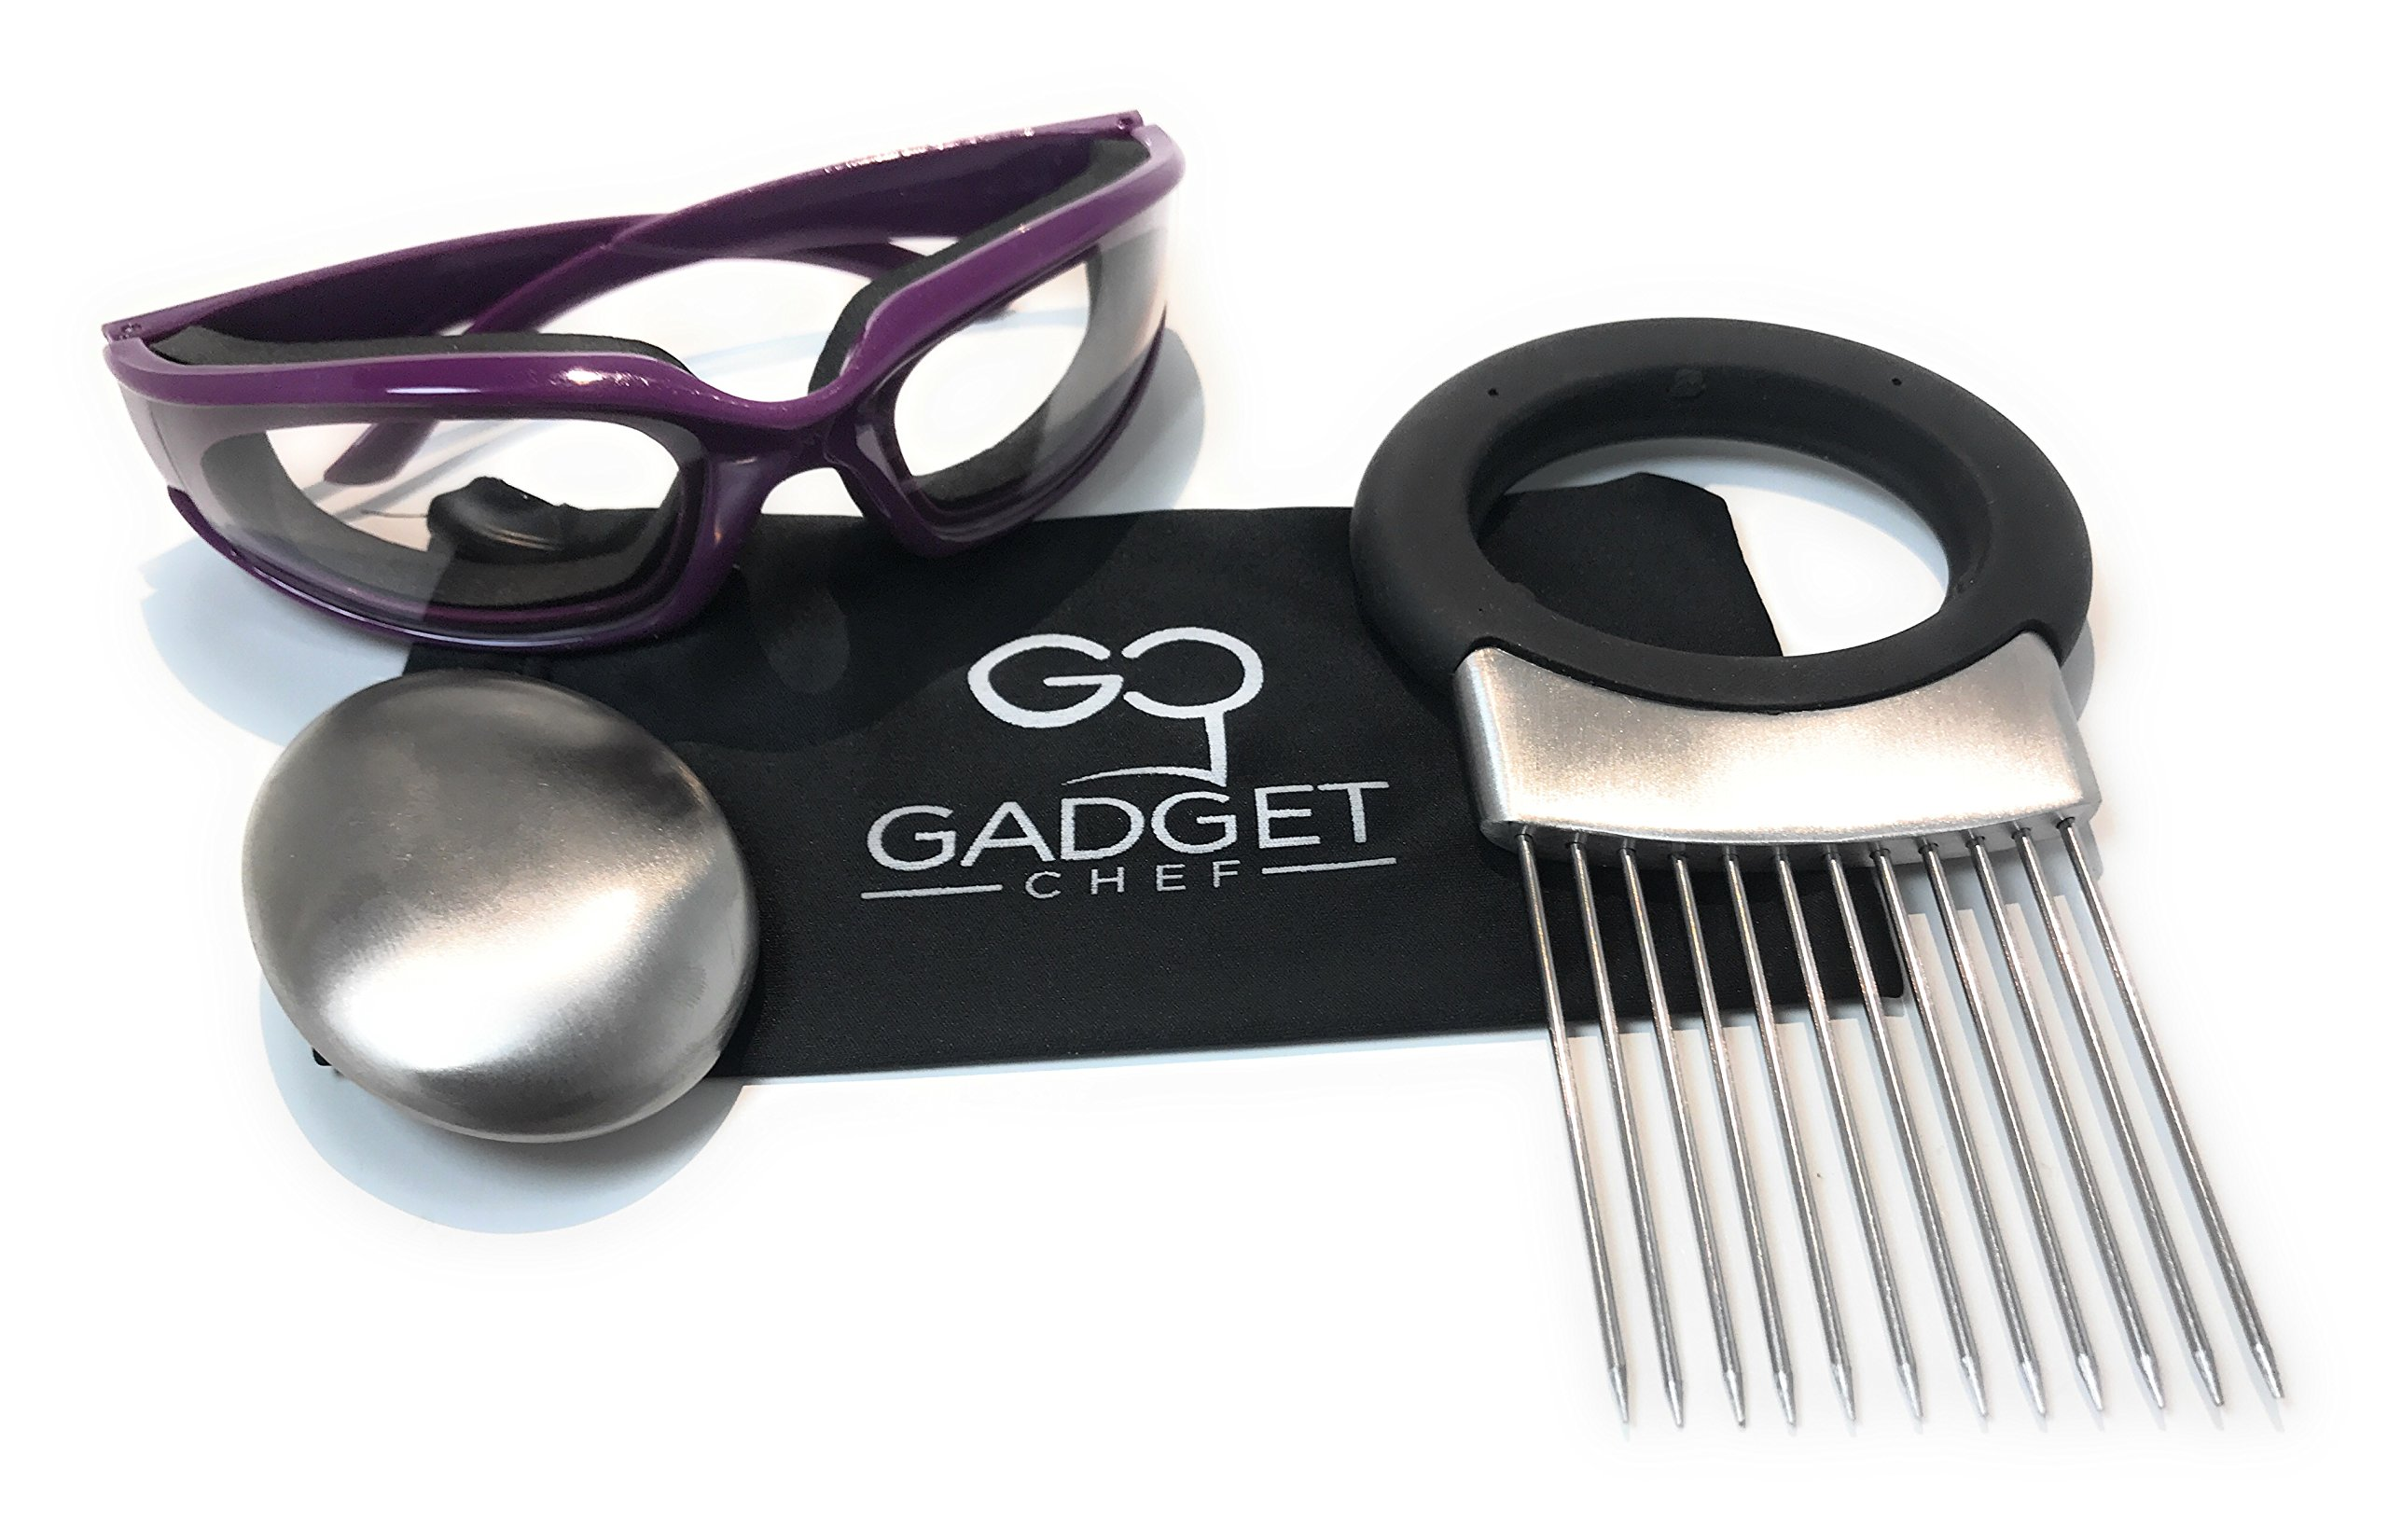 Onion Goggles Onion Holder Set – Includes Tear Free Anti Fog Onion Glasses with Free Micro Fiber Case, All in one Stainless Steel Onion Holder with Odor Remover. Must Have Kitchen Gadget Set (Purple)